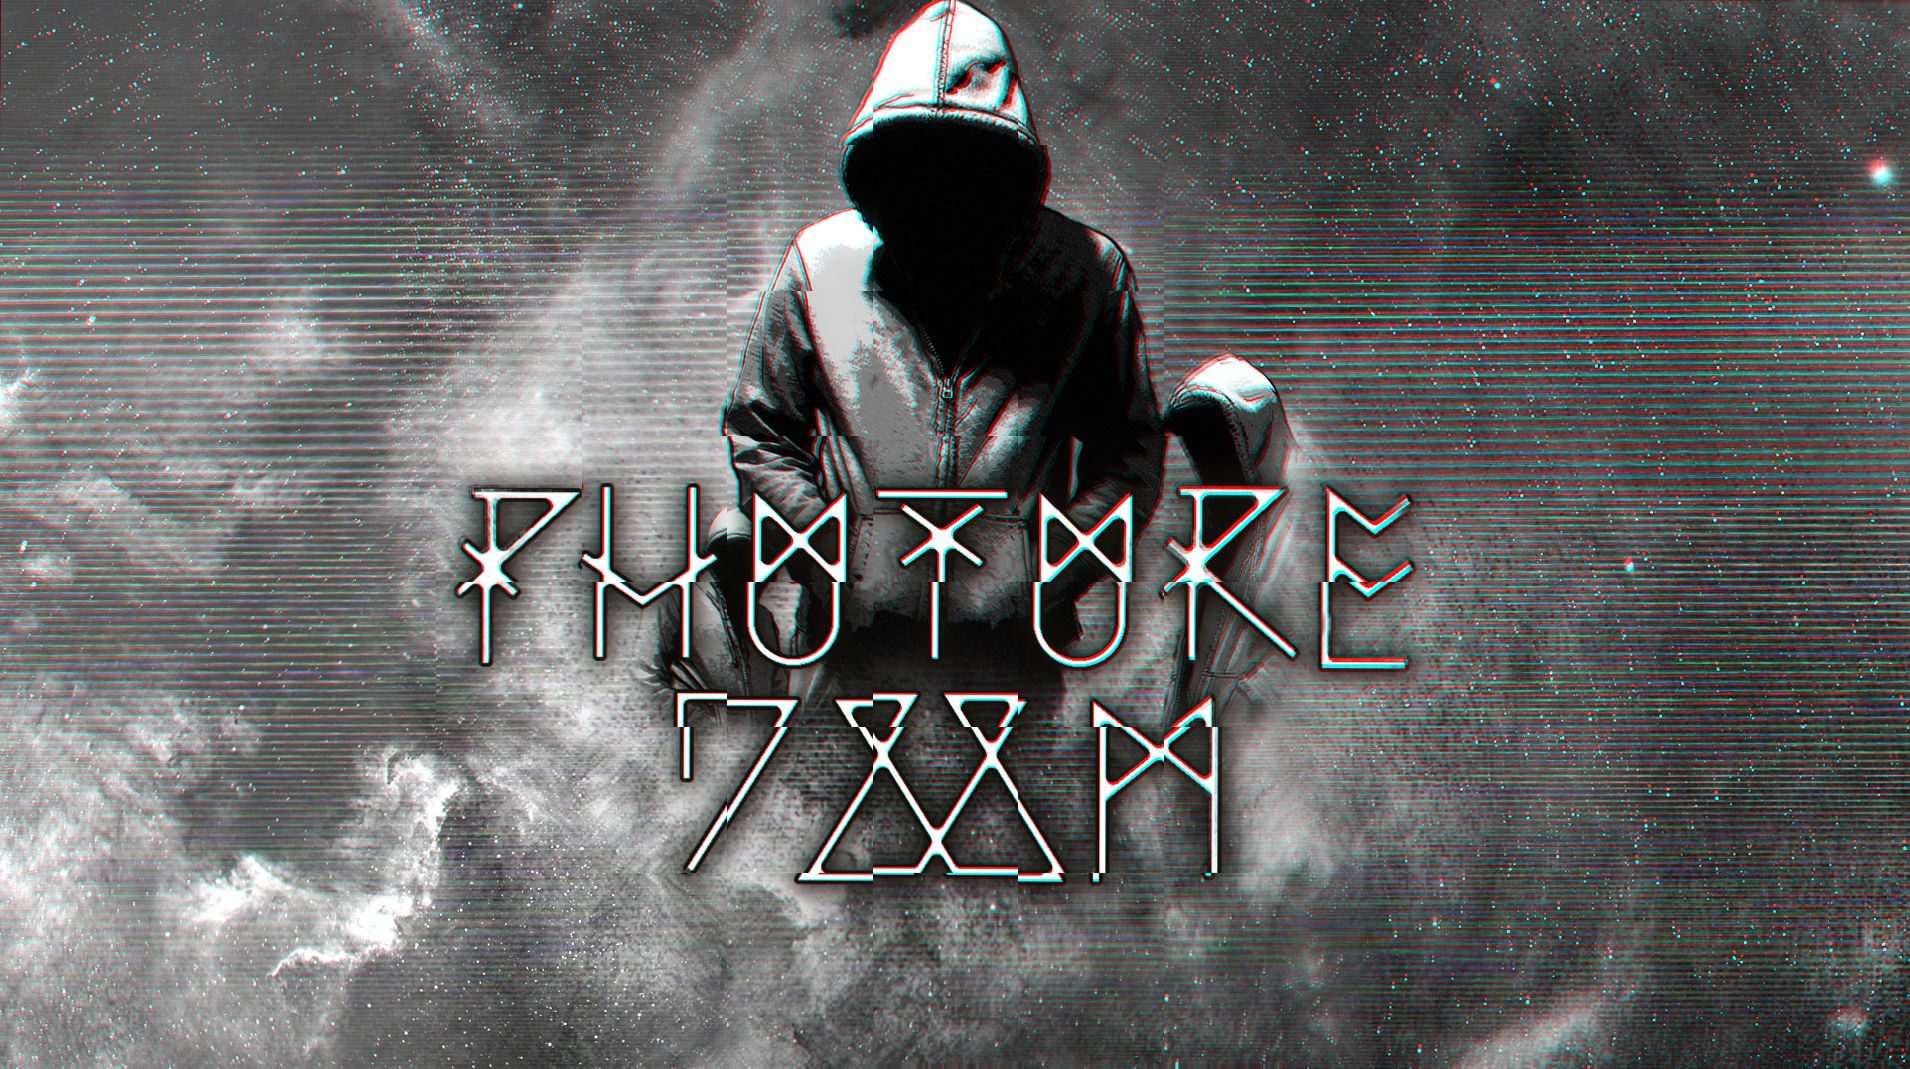 Phuture Doom Announce Full Length Album Just Noise To Me Just